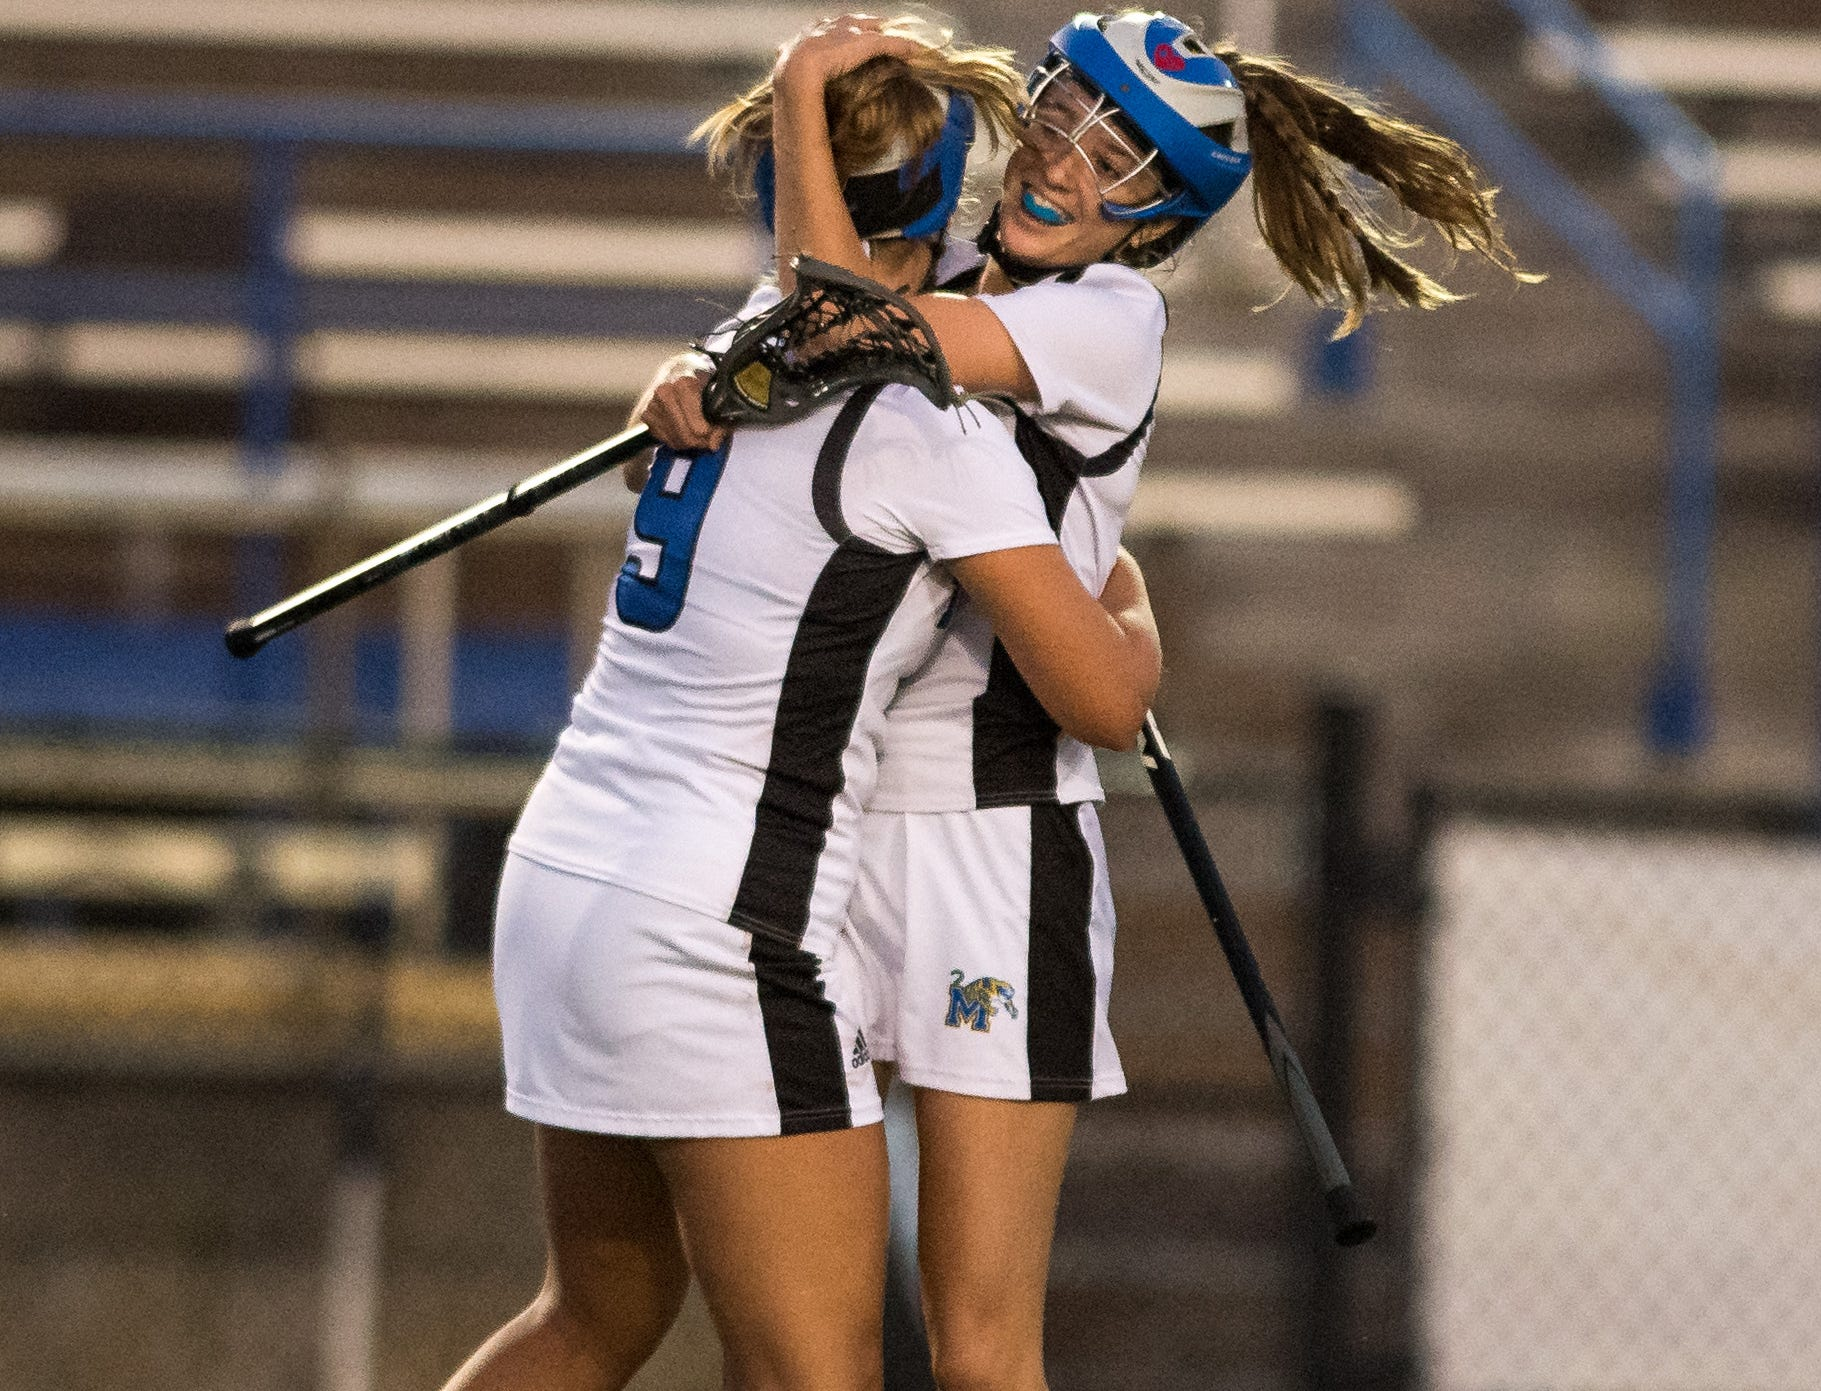 Martin County's Saige Roe (right) embraces Abagail Harrison after teammate Kayla Dusharm scores the go-ahead goal against Jensen Beach during the second half of the high school girls lacrosse game Thursday, March 21, 2019, at Martin County High School in Stuart. Martin County beat Jensen Beach 14-12.